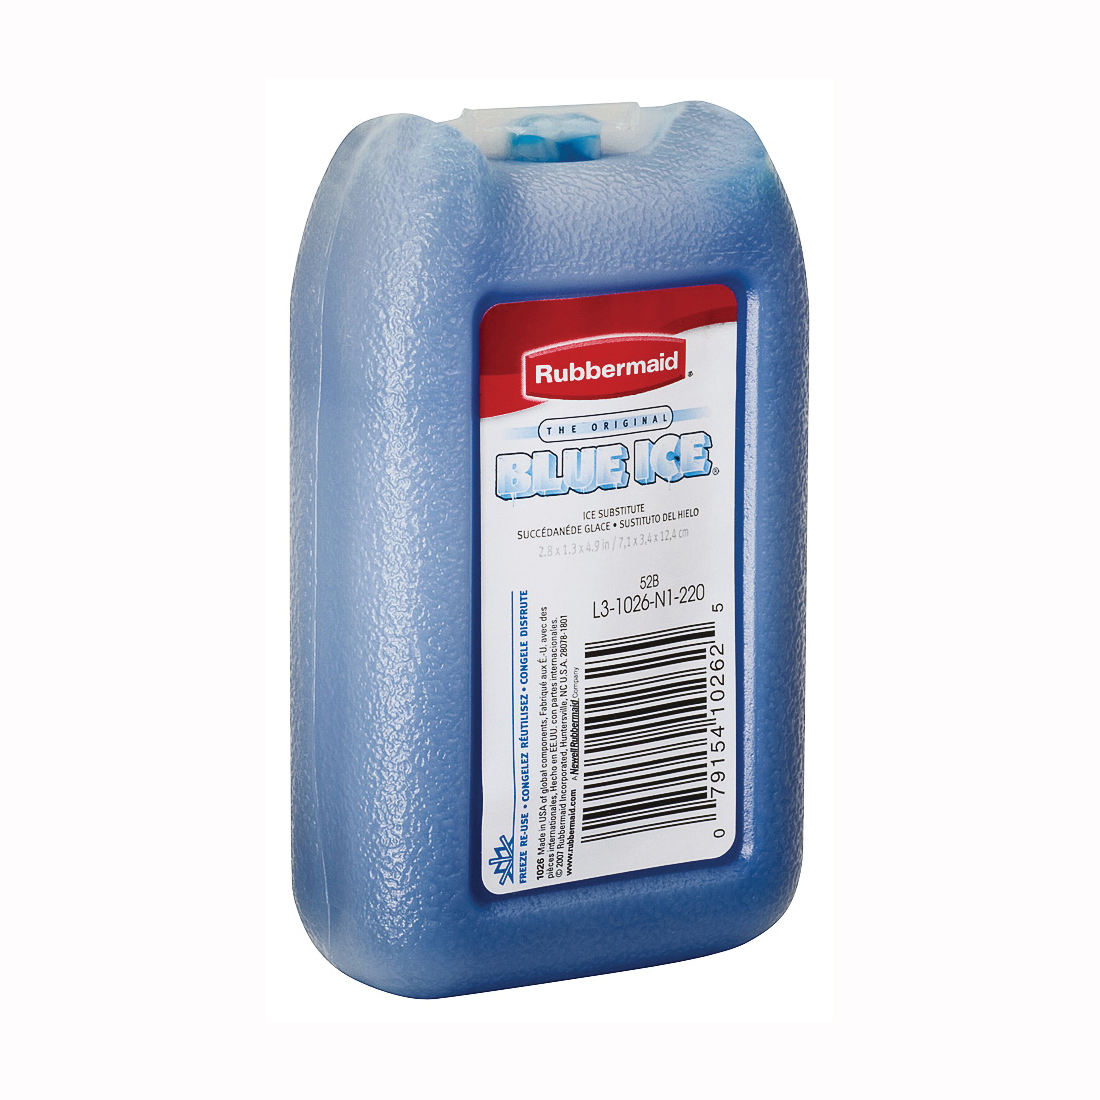 Picture of Rubbermaid FG1026TL220 Ice Substitute, 8 oz, Blue